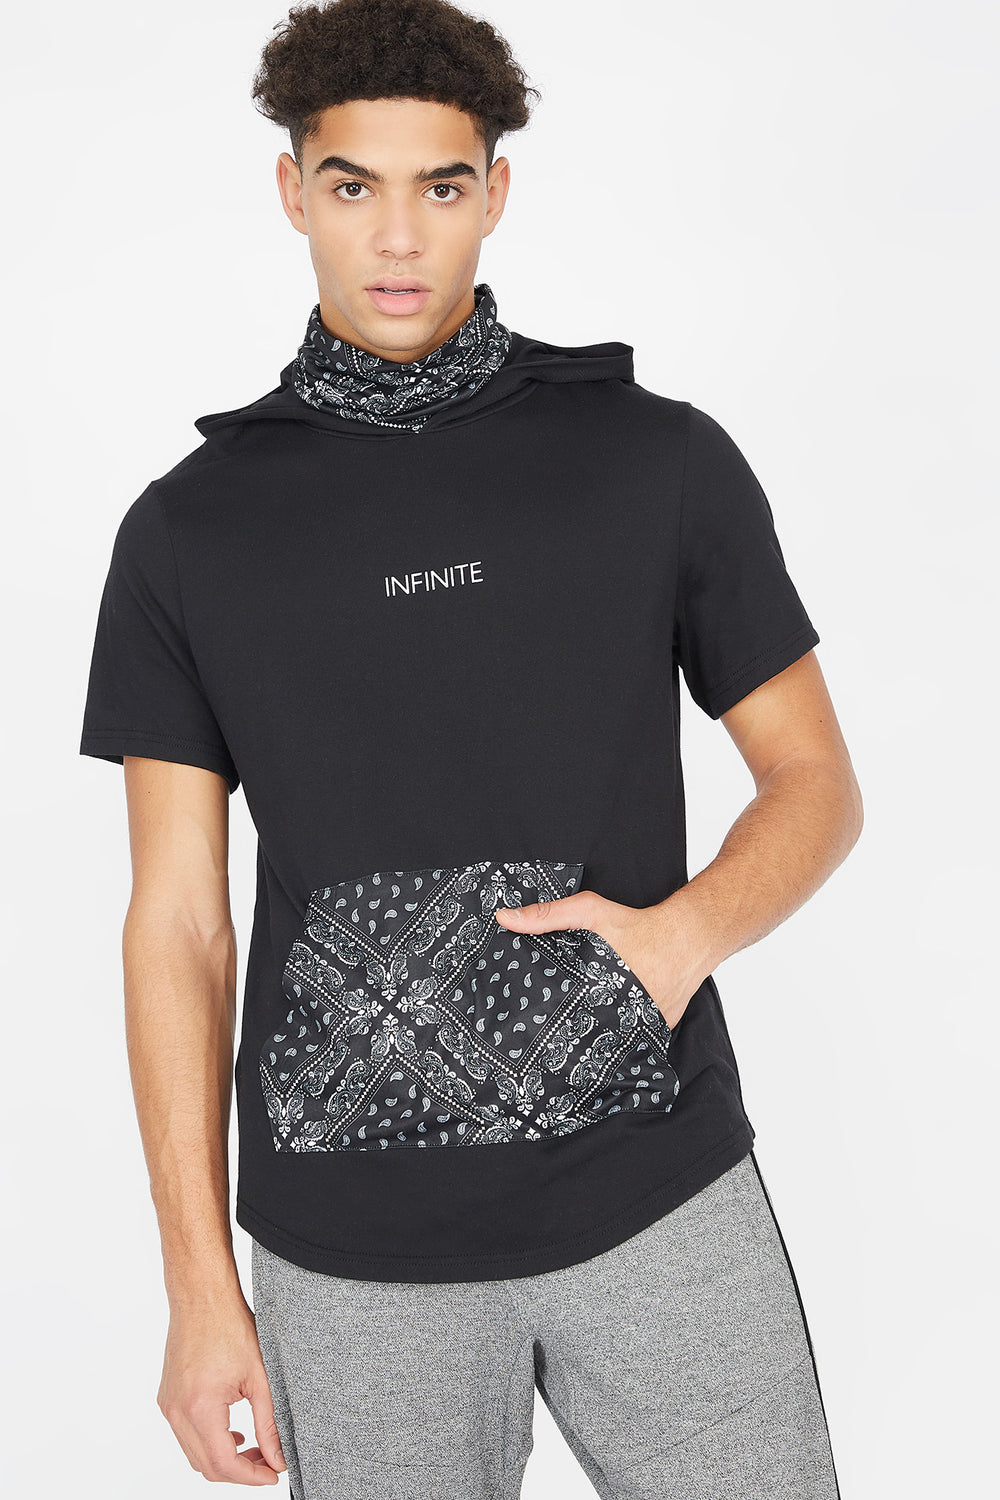 Bandana Printed Graphic Short Sleeve Snood Hoodie Black